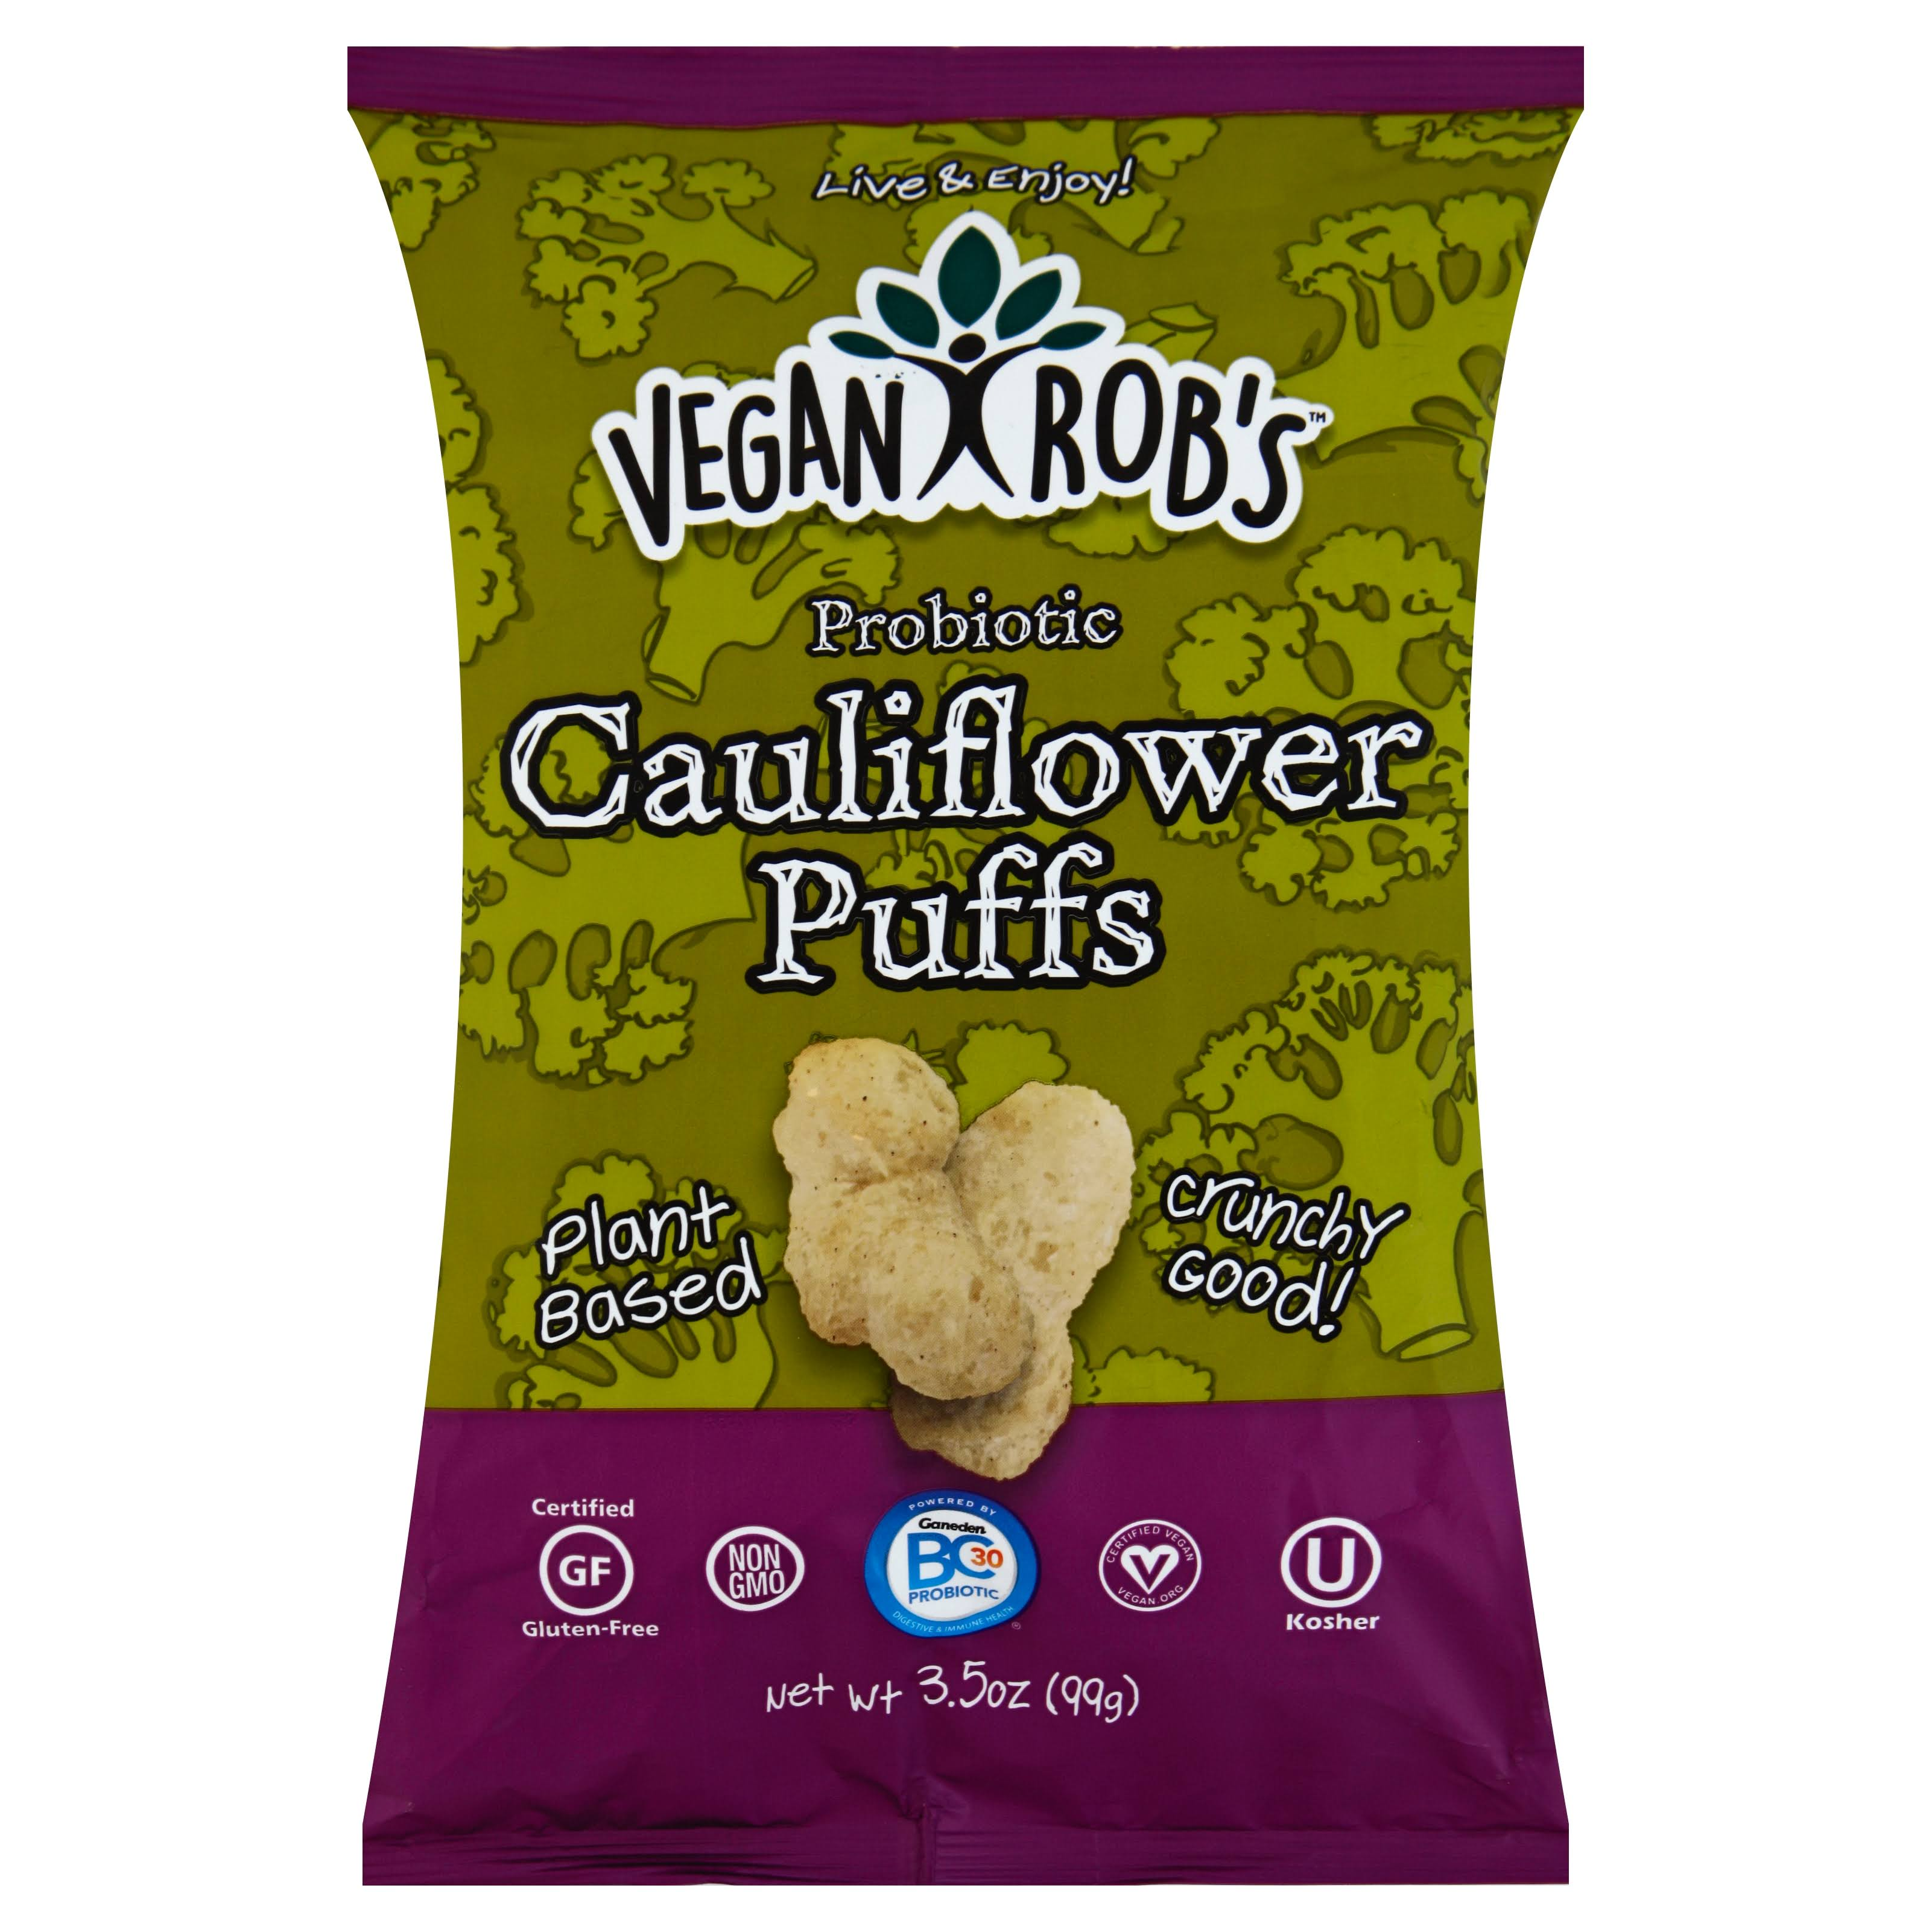 Vegan Robs Cauliflower Puffs, Probiotic - 3.5 oz